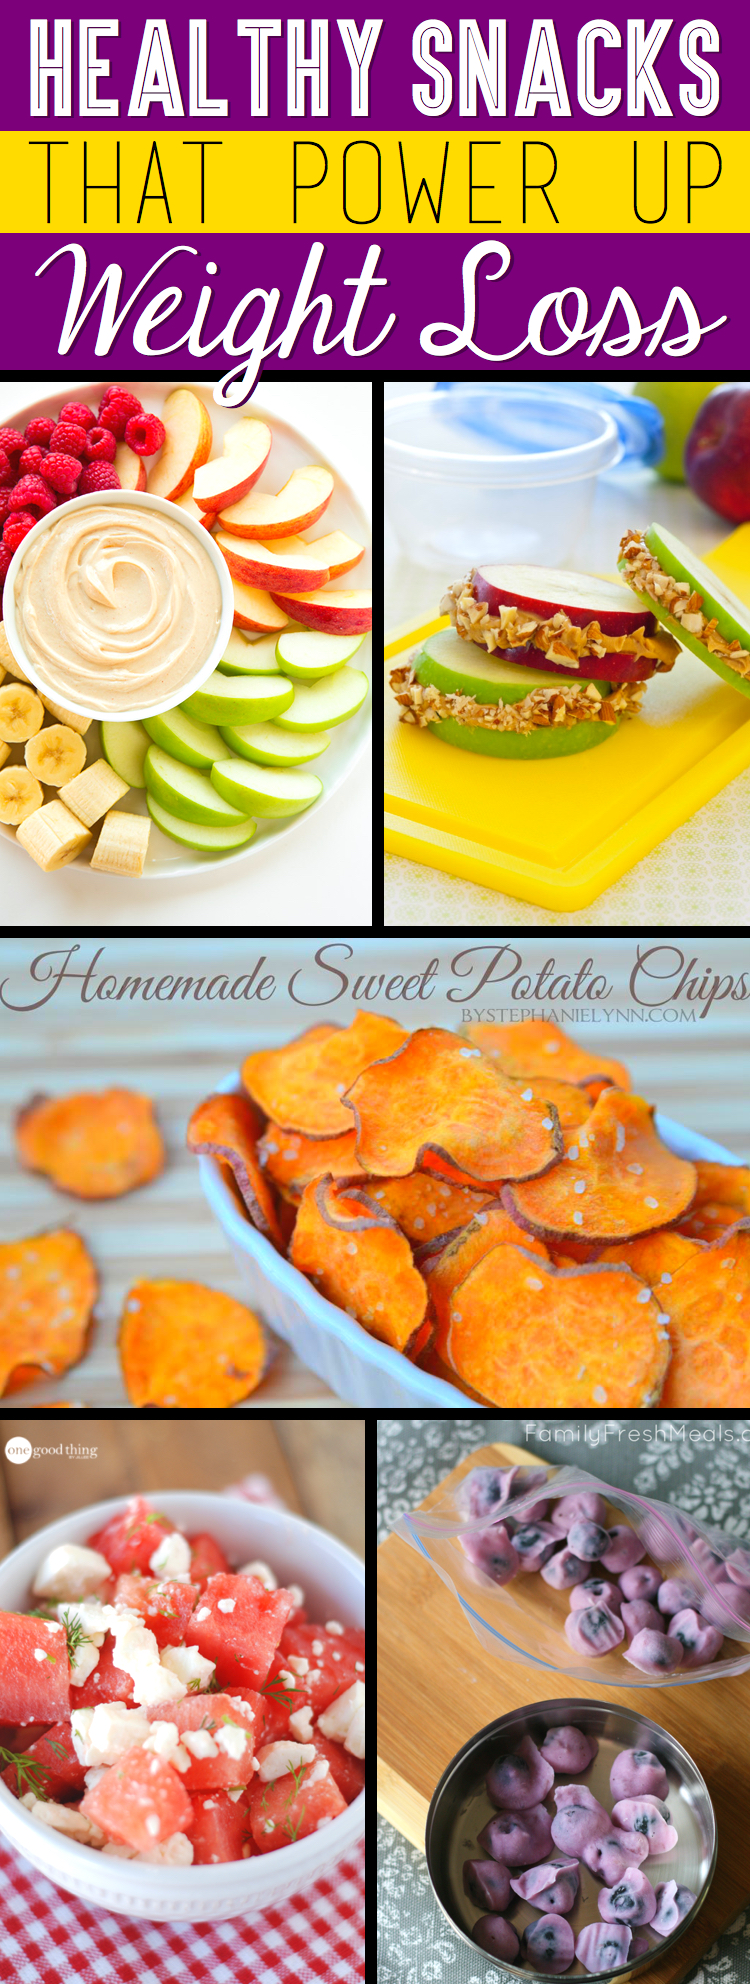 30+ Easy Healthy Snacks That Power Up Weight Loss